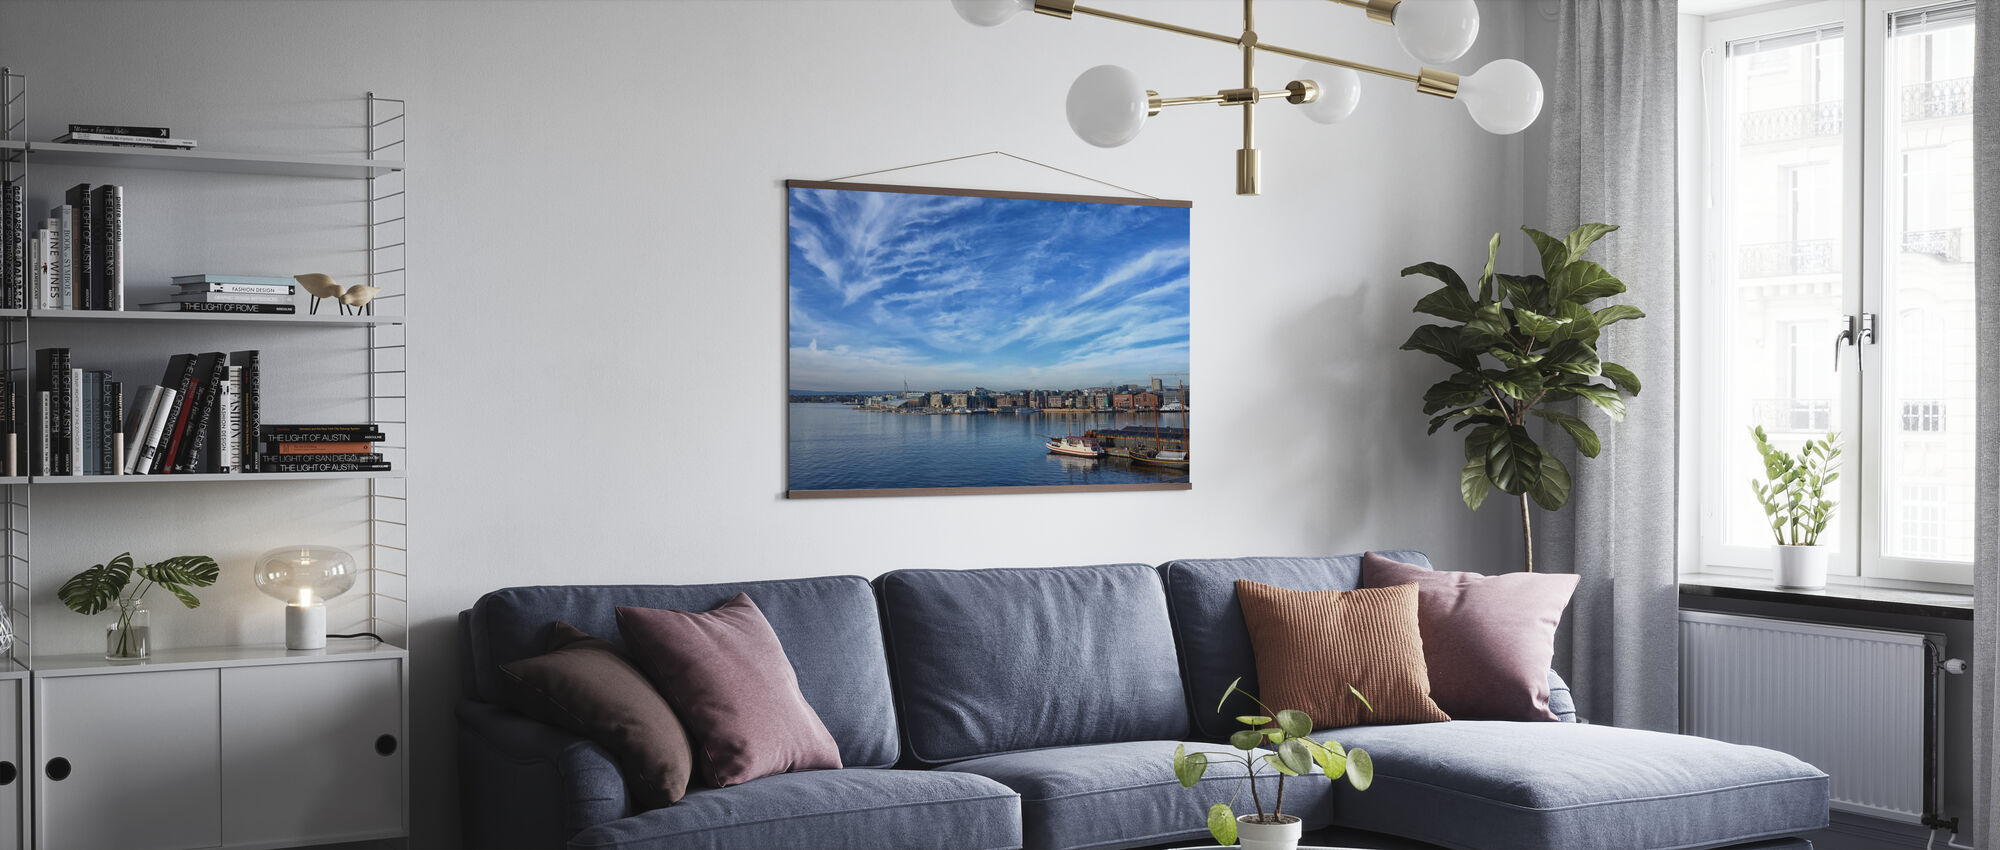 Oslo Harbor, Norway - Poster - Living Room